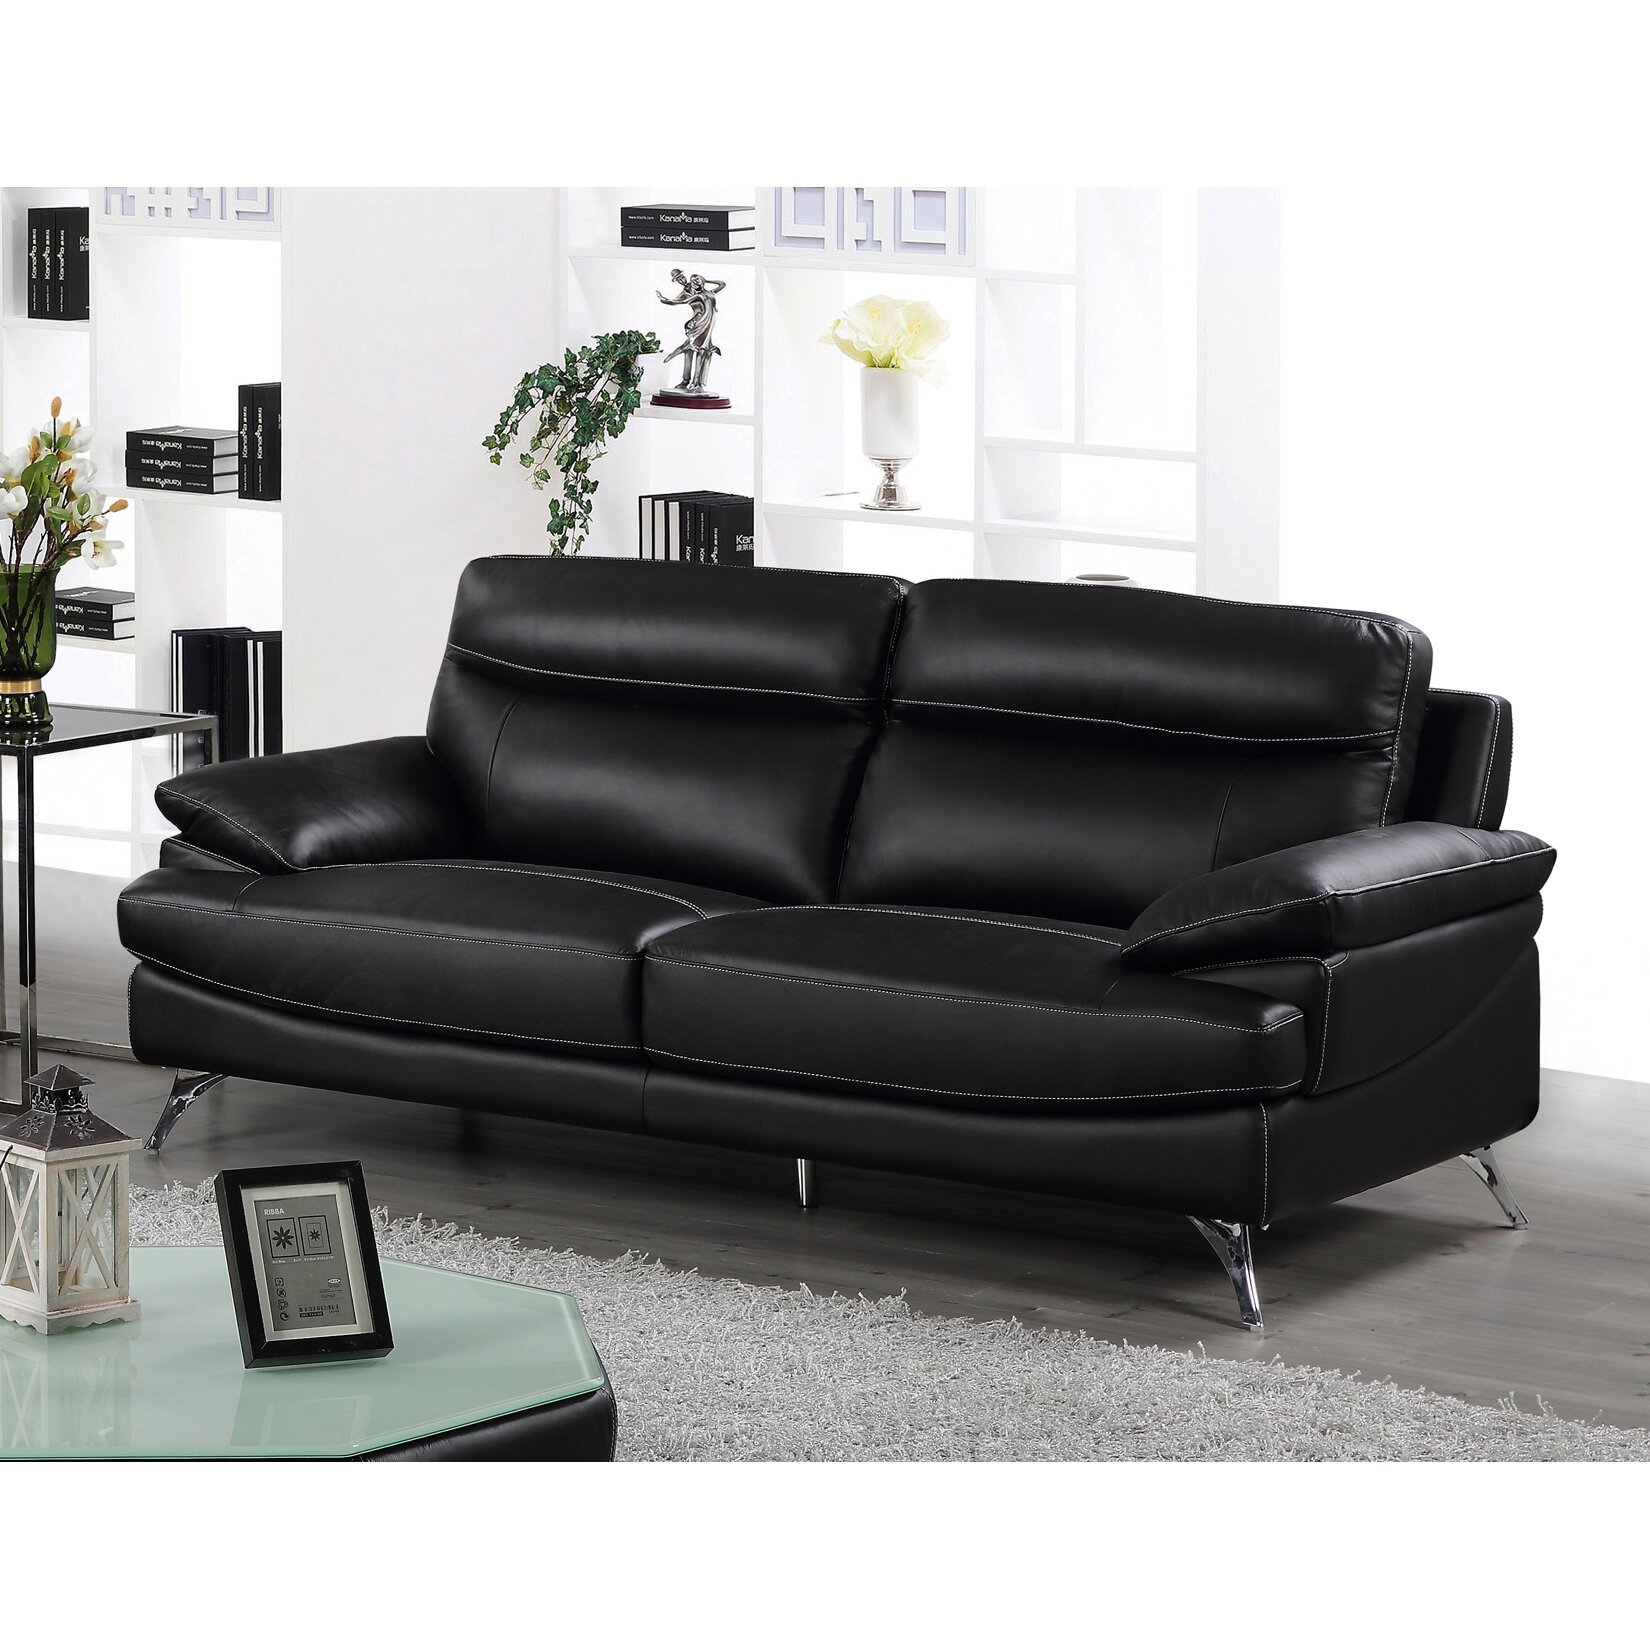 Best quality leather sofa for Quality furniture